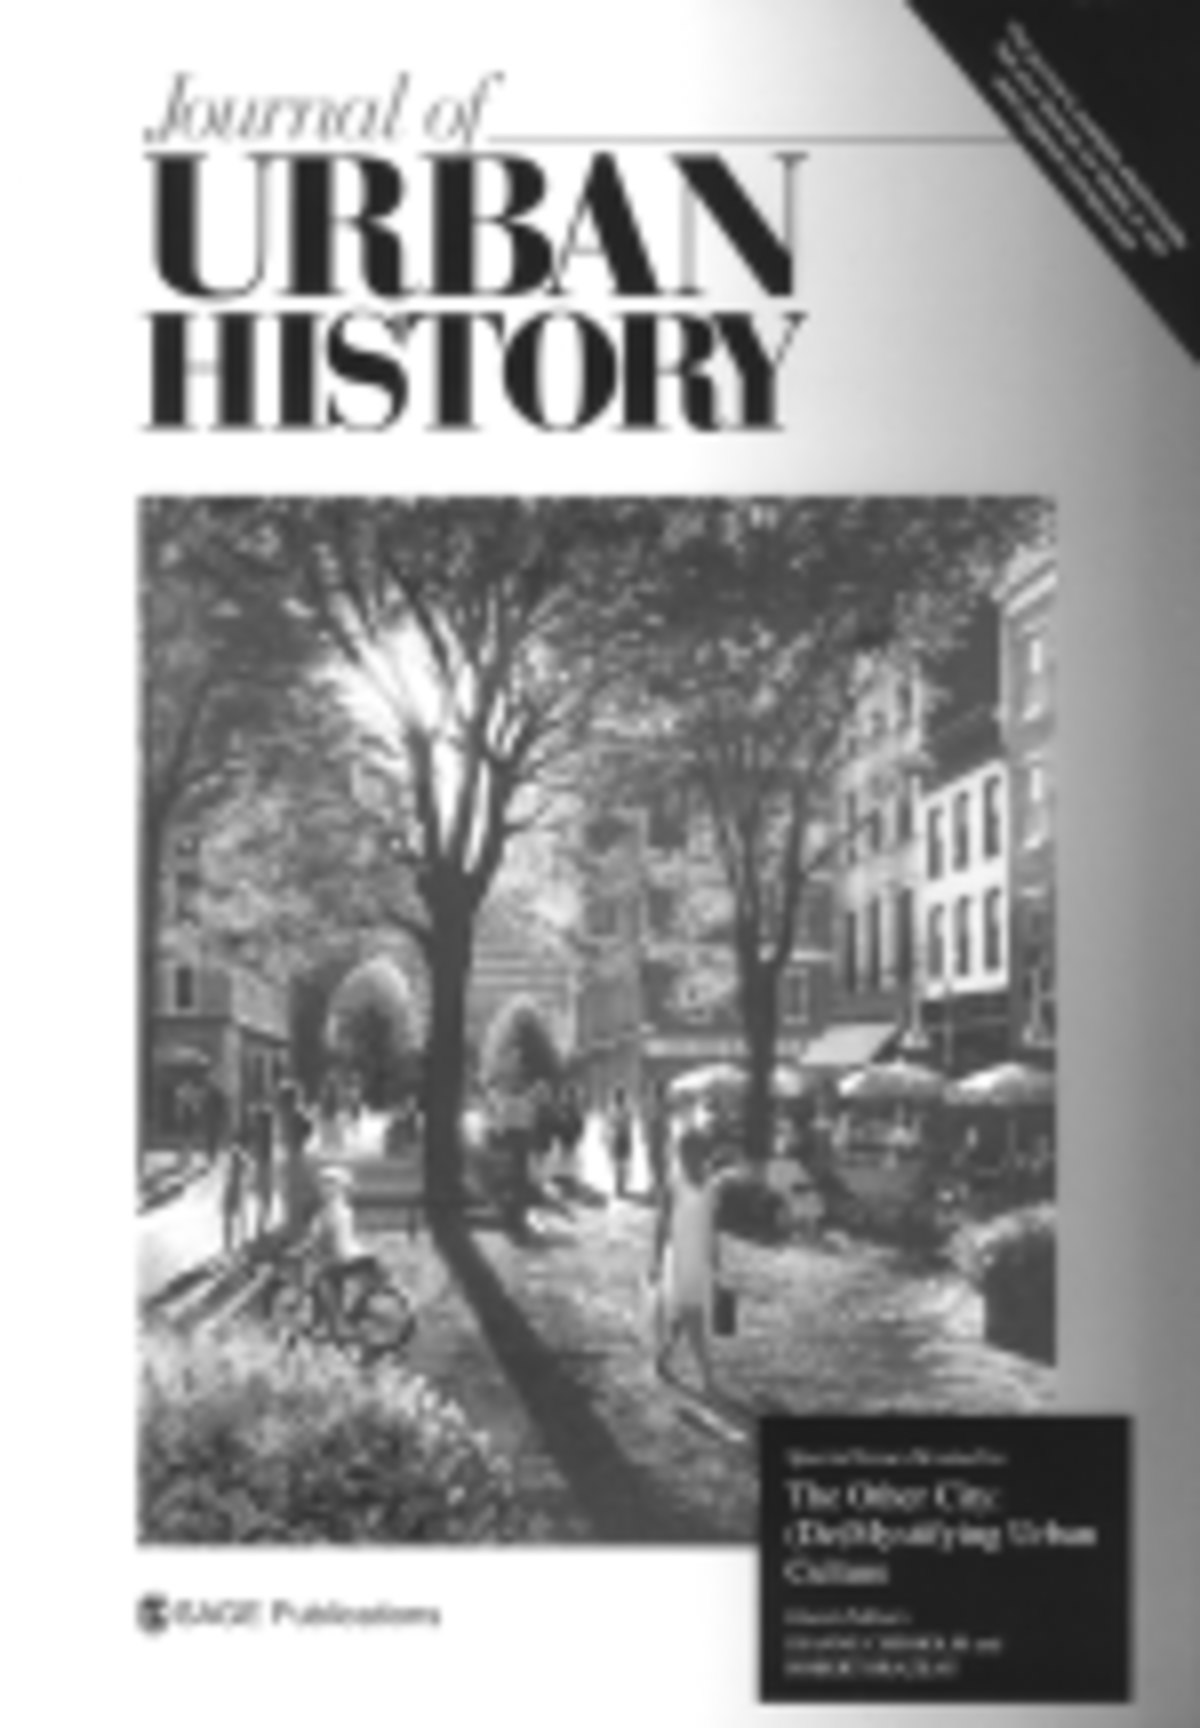 Journal of Urban History - Wikipedia